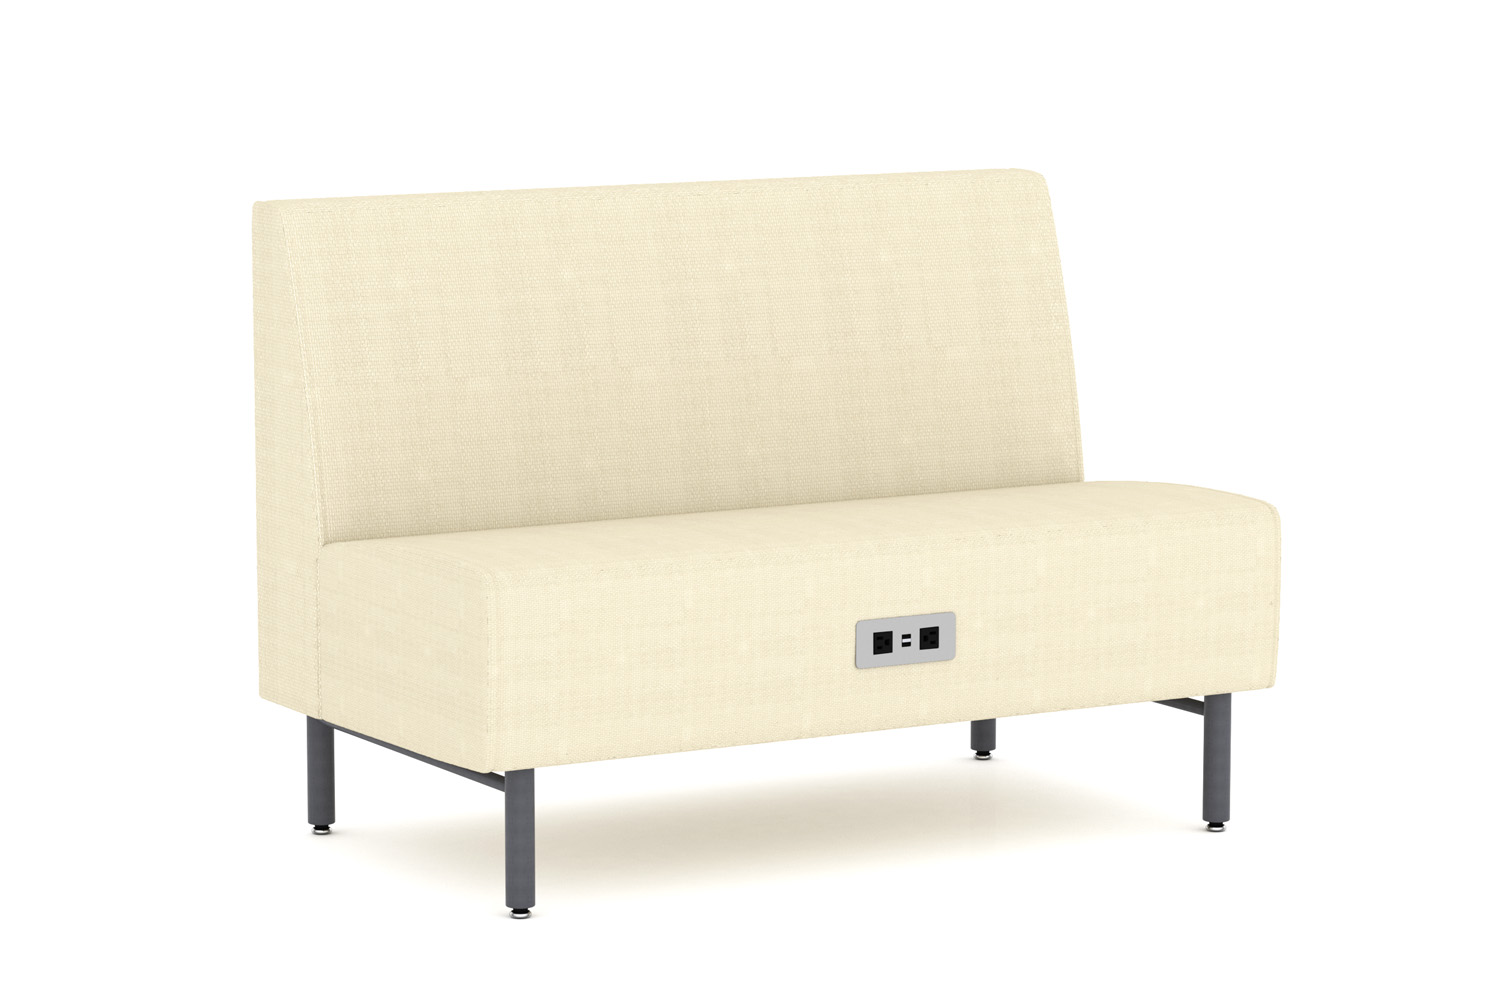 Tivoli, Banquette, 48 inch, Power/Data